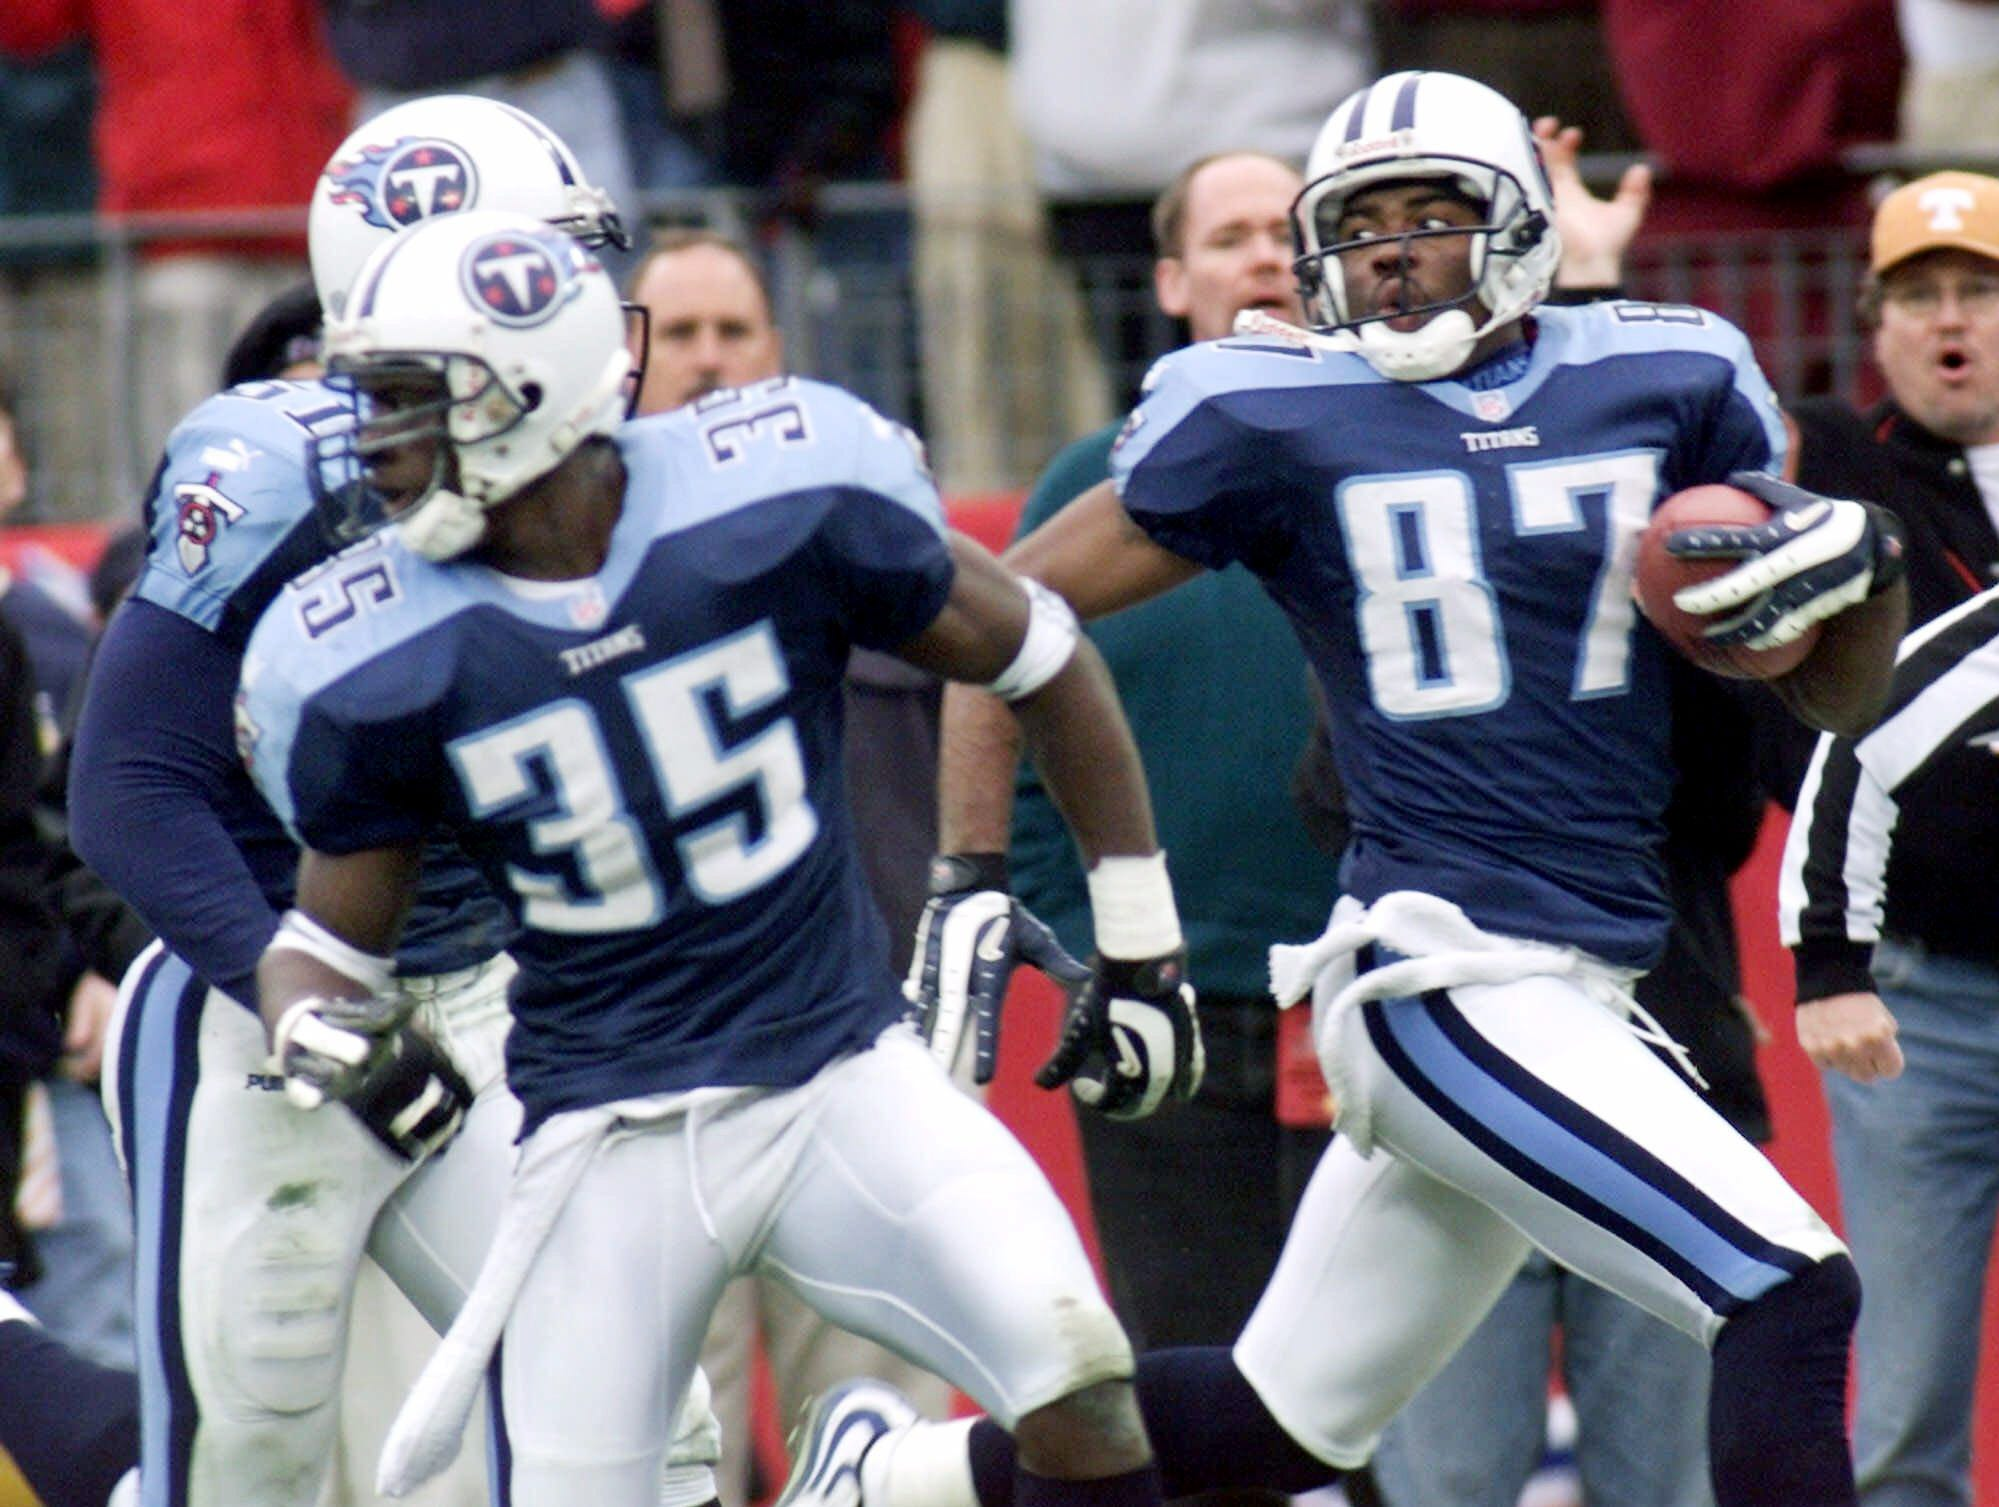 Tennessee Titans wide receiver Kevin Dyson (87) looks back as he returns a kickoff with seconds remaining in the game against the Buffalo Bills in the AFC wild card game Jan. 8, 2000. Blocking for Dyson are teammates Perry Phenix (35) and Greg Favors (51).